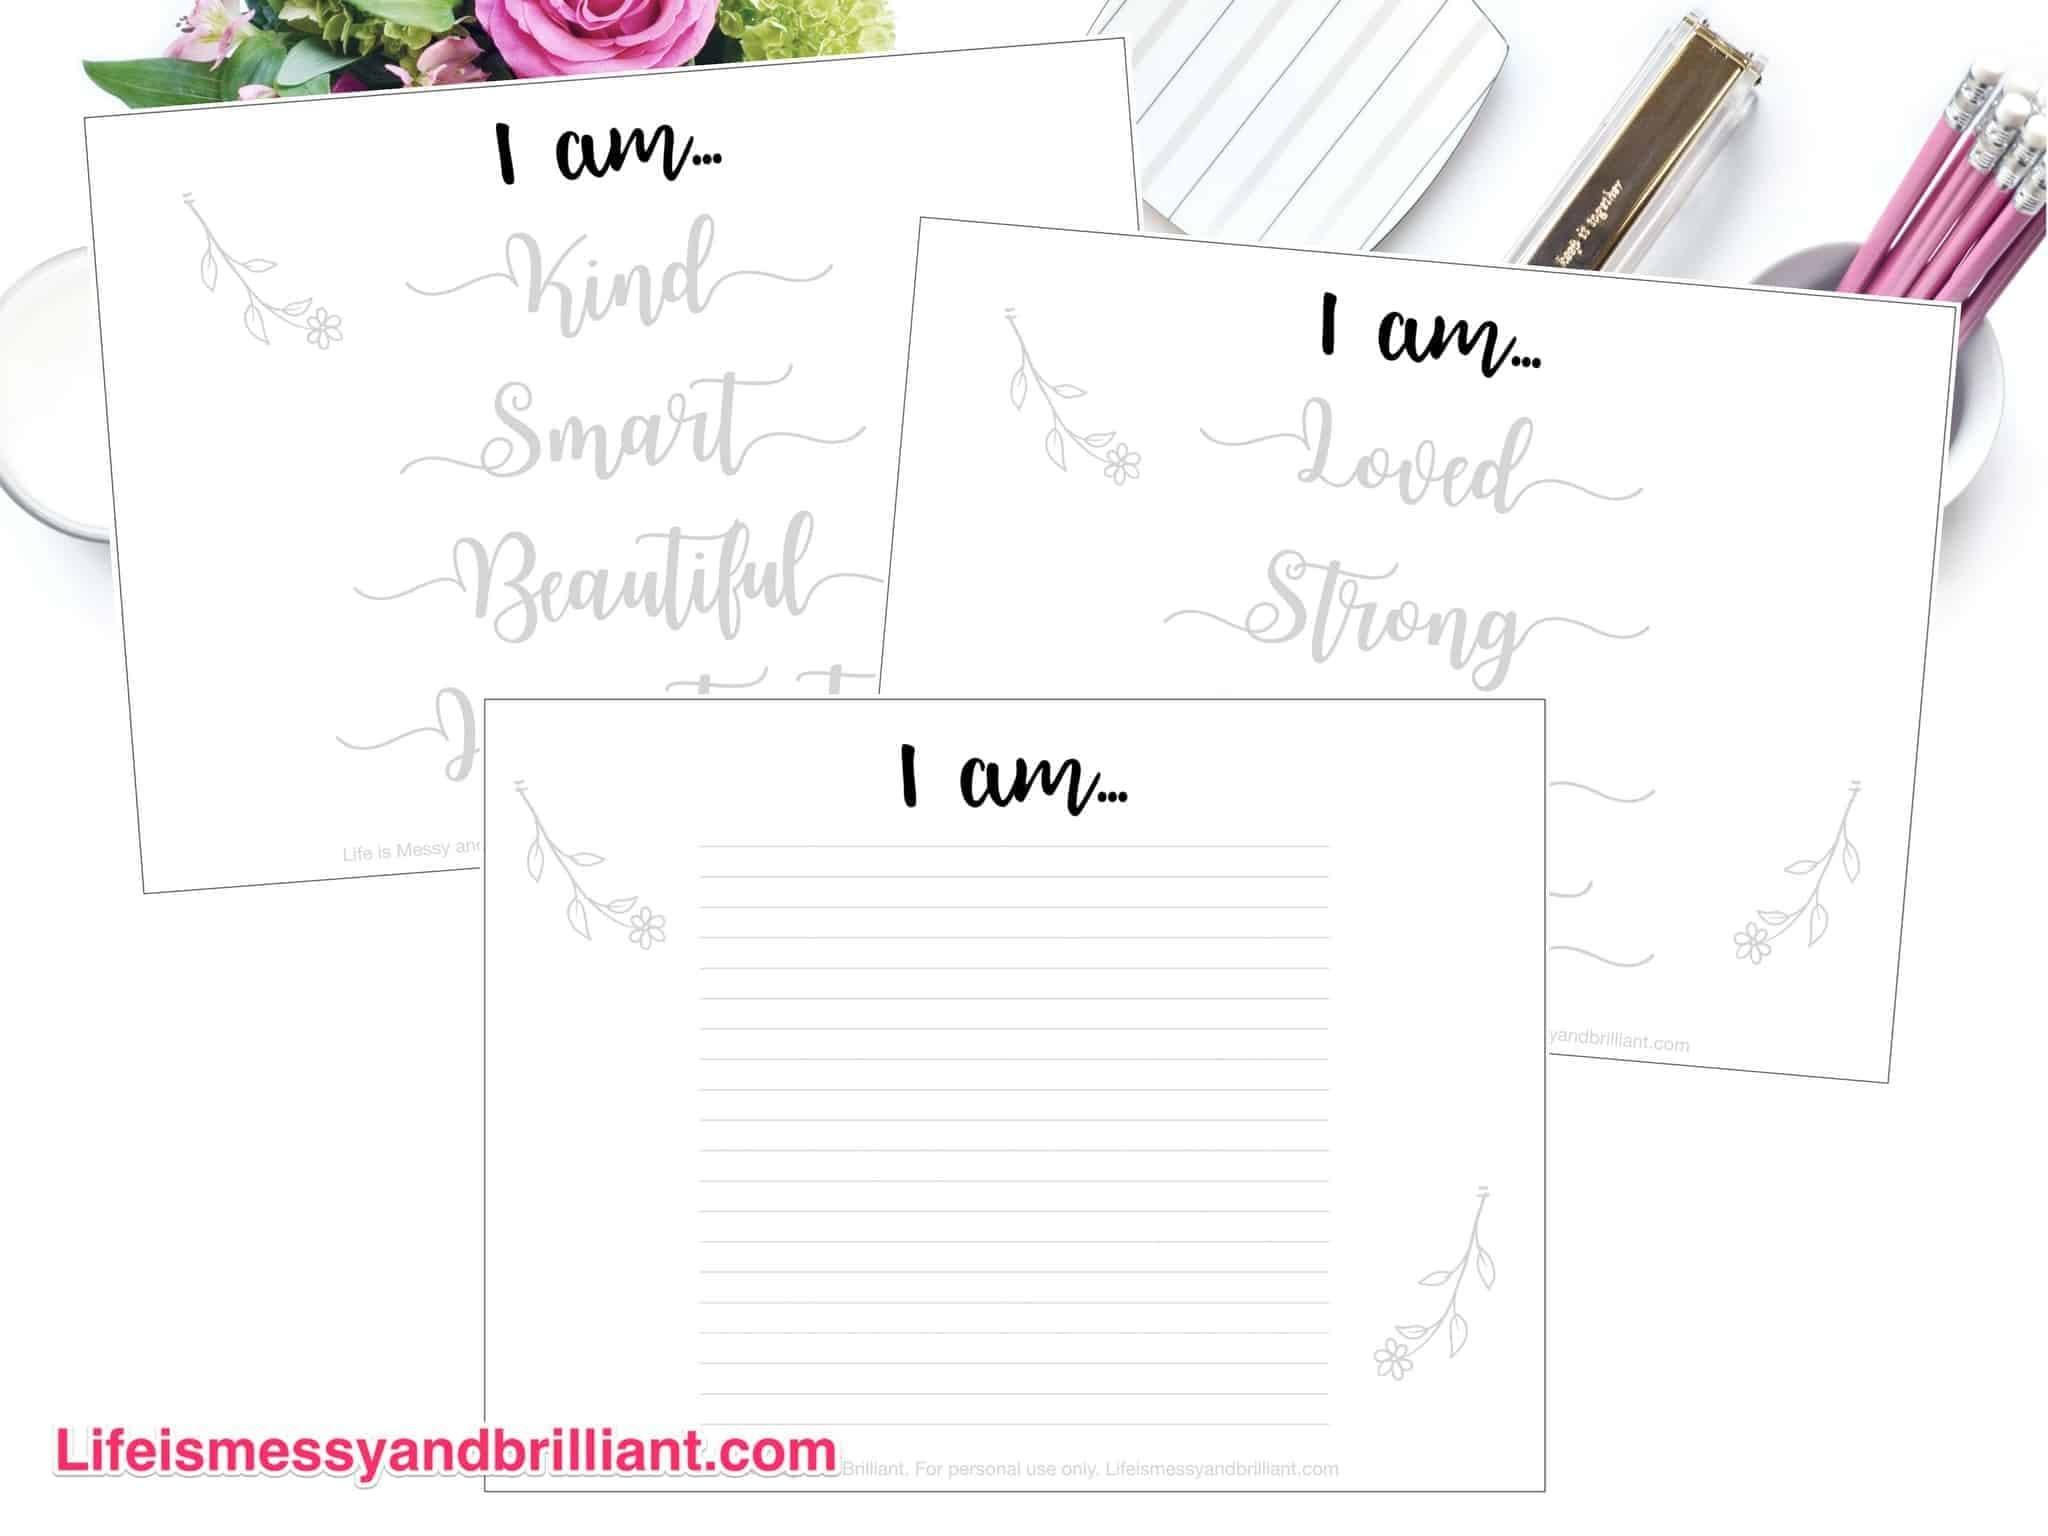 photo relating to Printable Calligraphy Worksheets identified as Study How in direction of Letter with These types of Cost-free Hand Lettering Worksheets